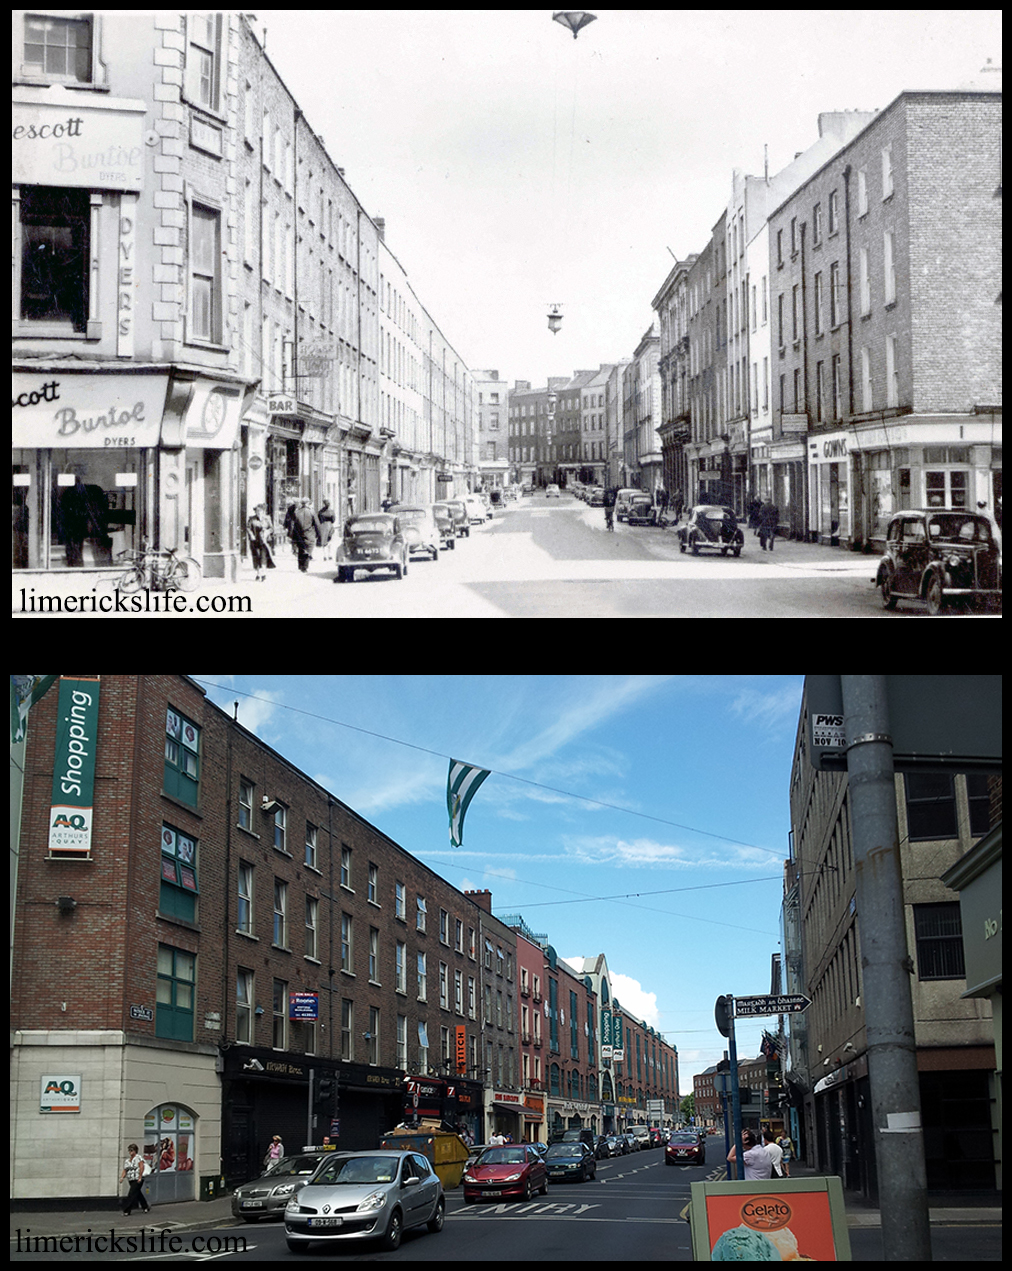 10 Then and Now Photos of Limerick